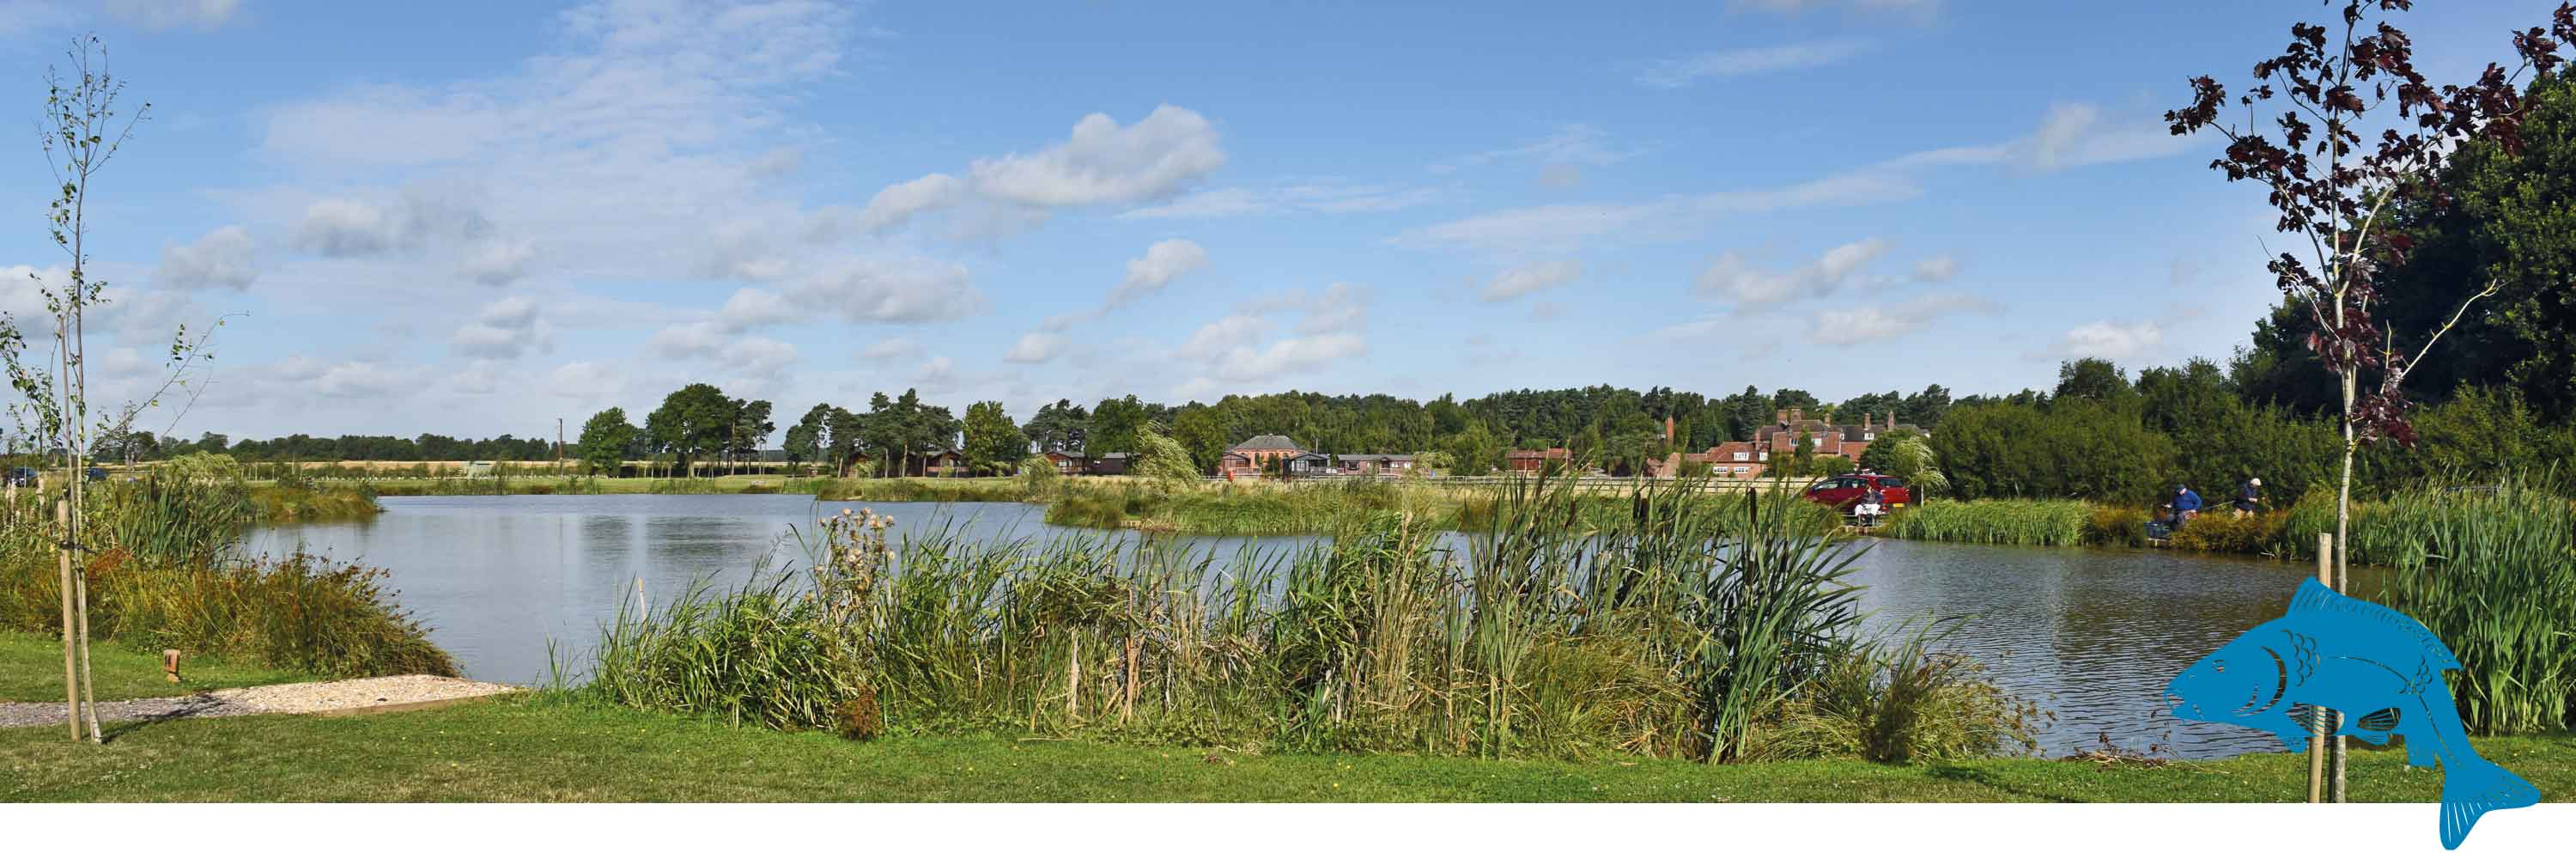 open fishing matches, lakes, Bevercotes, Nottinghamshire